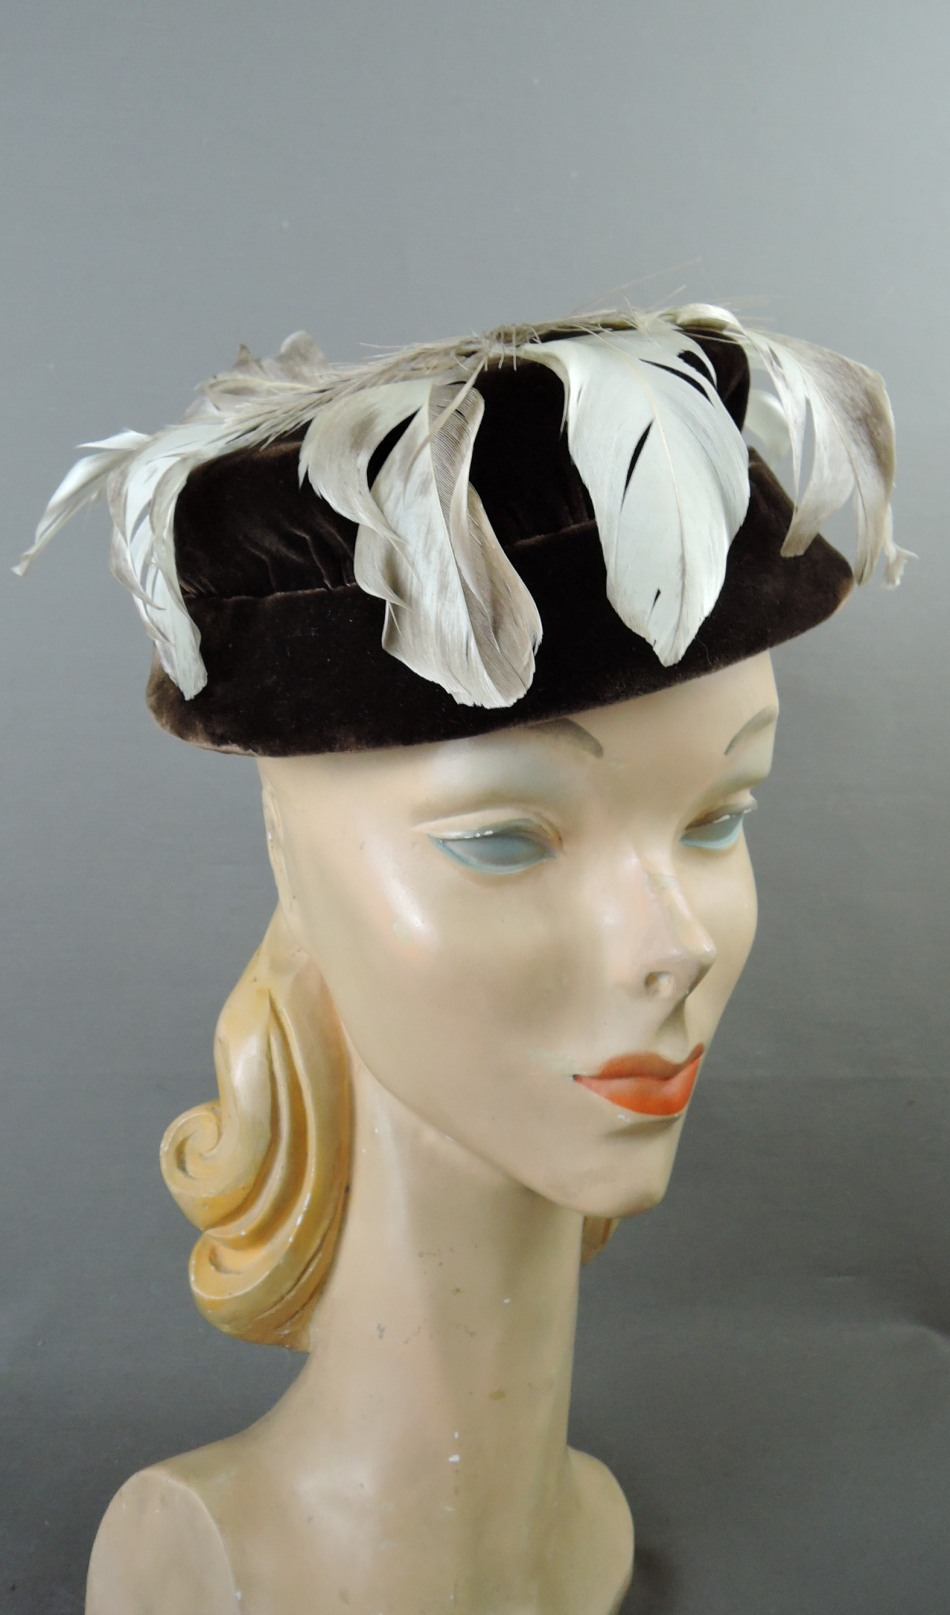 Vintage Brown Velvet and Feathers Hat, 1950s Evening Cocktails